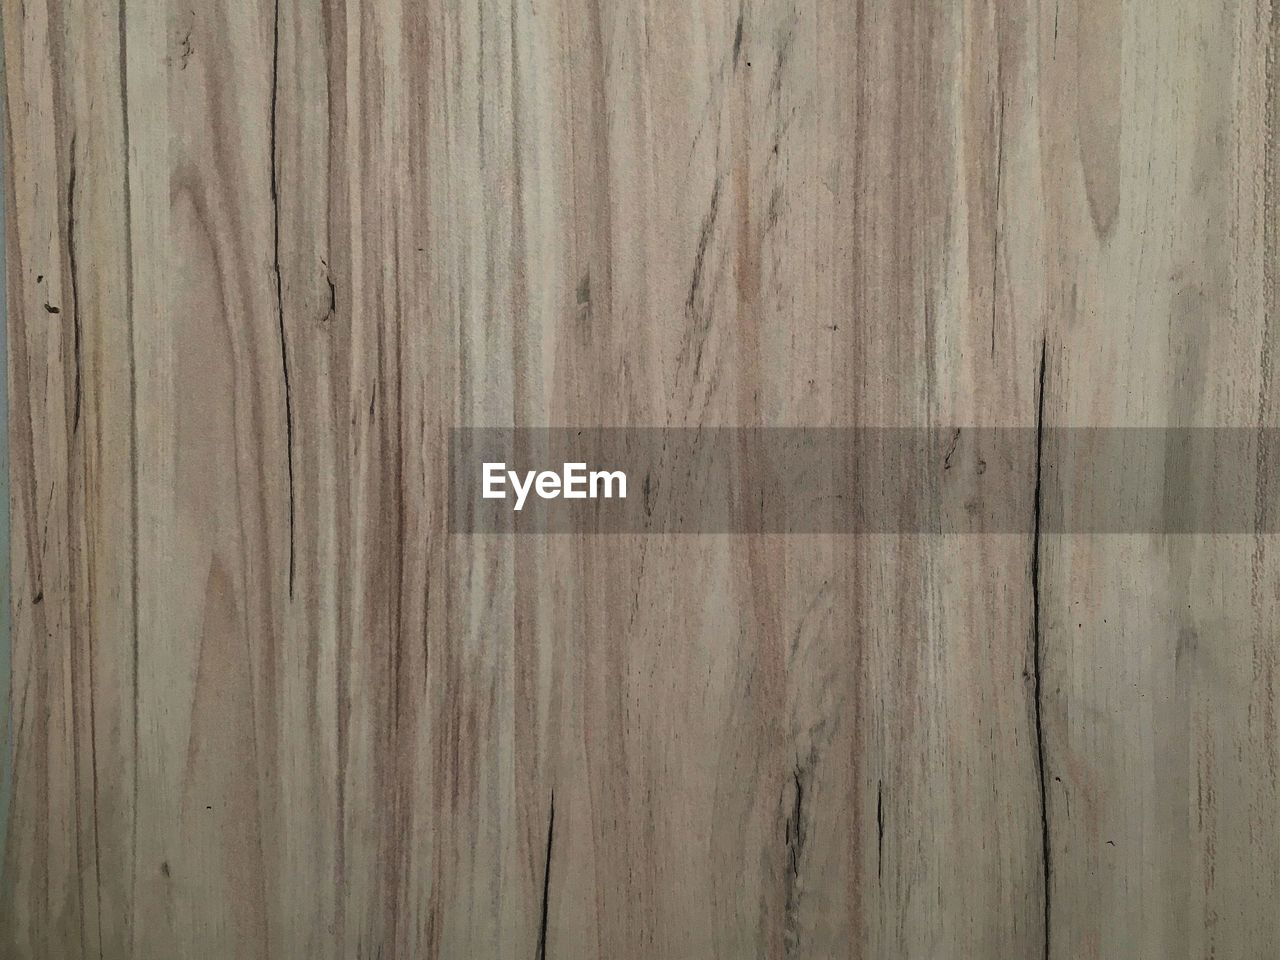 backgrounds, textured, pattern, full frame, wood - material, wood grain, wood, no people, plank, close-up, flooring, brown, hardwood, rough, timber, natural pattern, material, wall - building feature, old, copy space, abstract, surface level, pine wood, textured effect, parquet floor